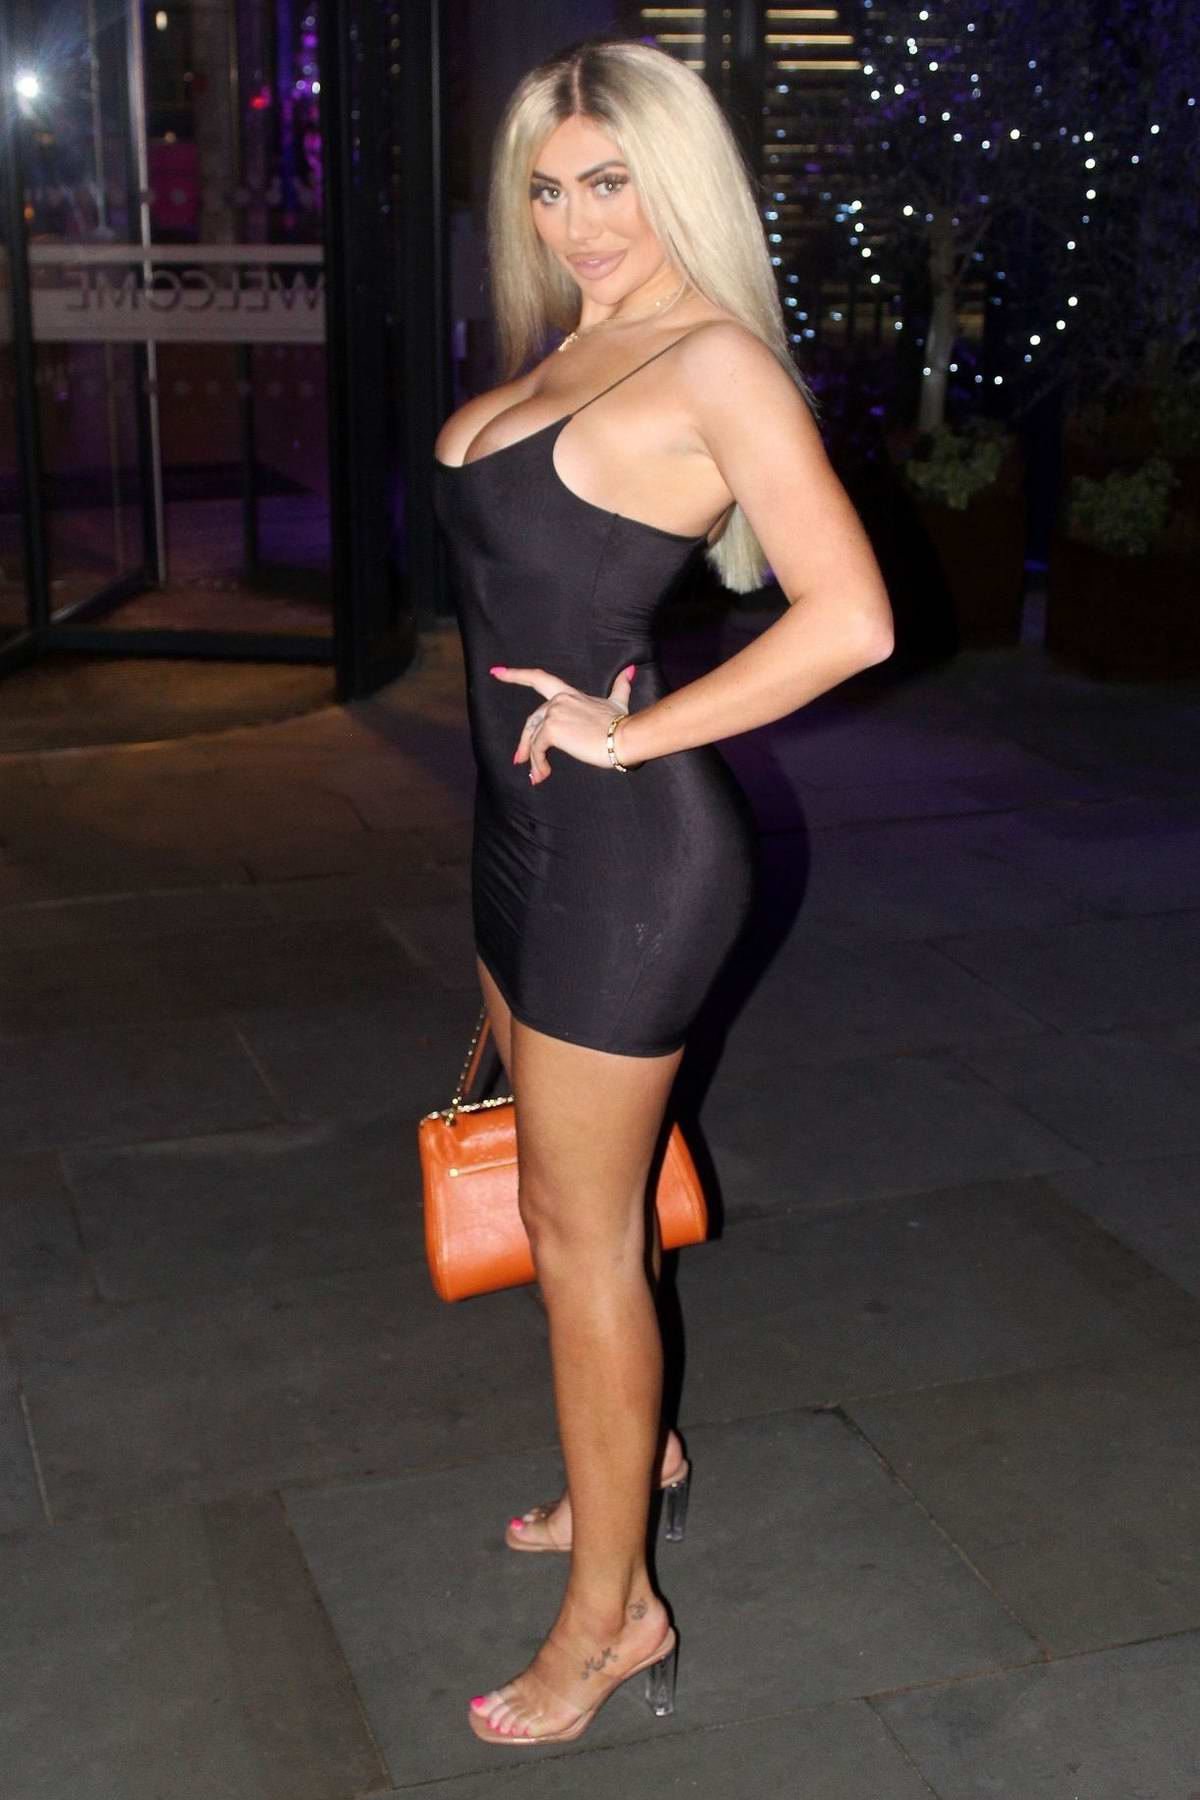 Chloe Ferry wears a tight black mini dress during a night out at BLVD bar in Manchester, UK